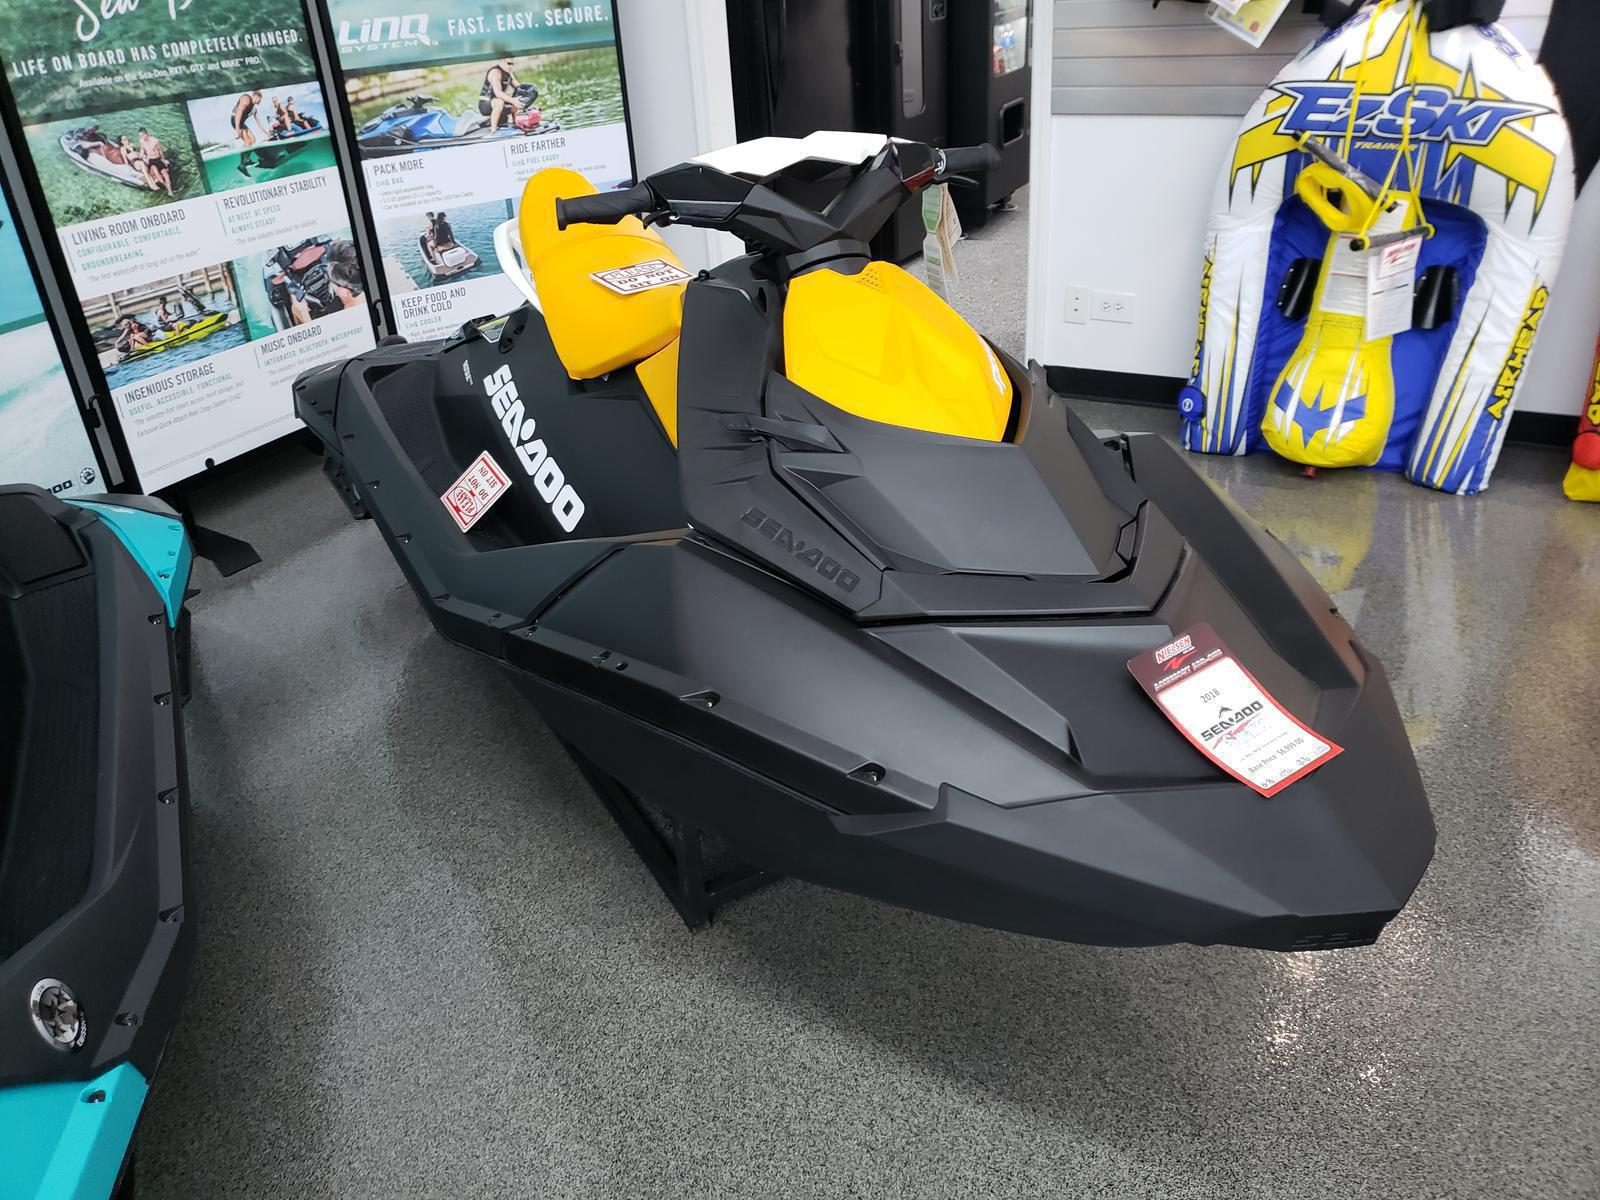 2018, 2012 and 2017 Inventory from Yamaha and Sea-Doo